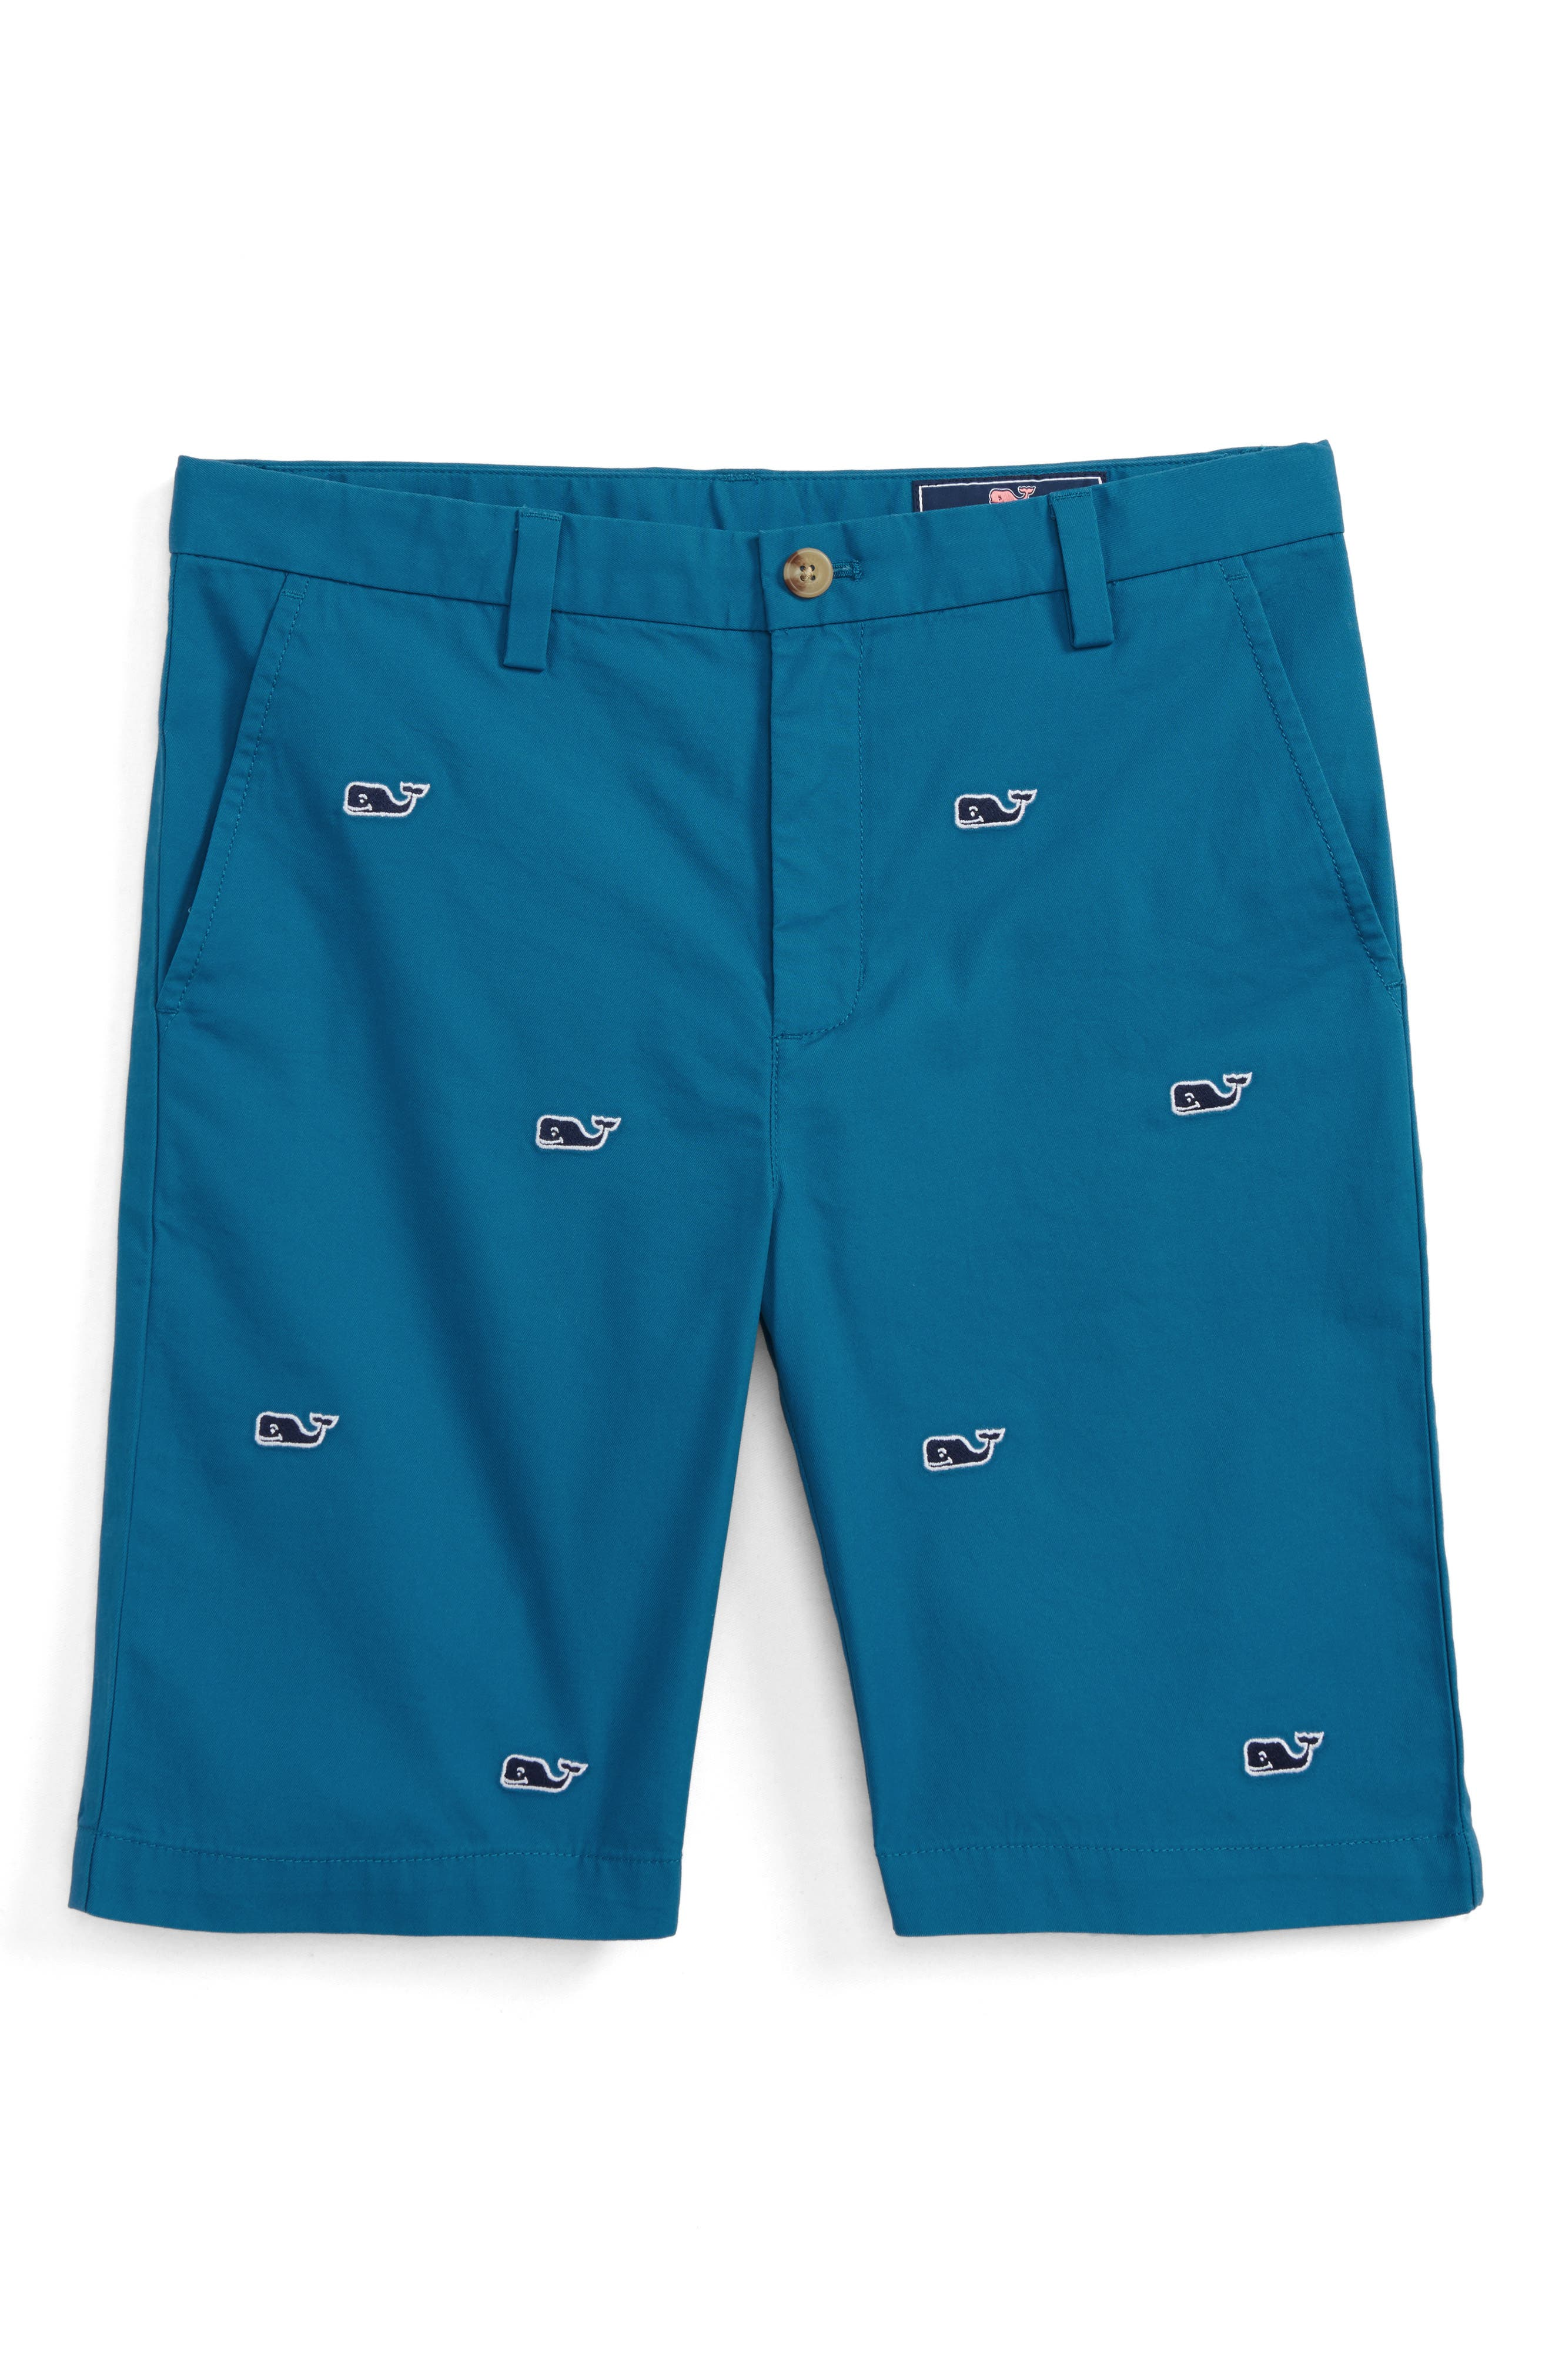 Breaker Whale Embroidered Shorts,                         Main,                         color, 401